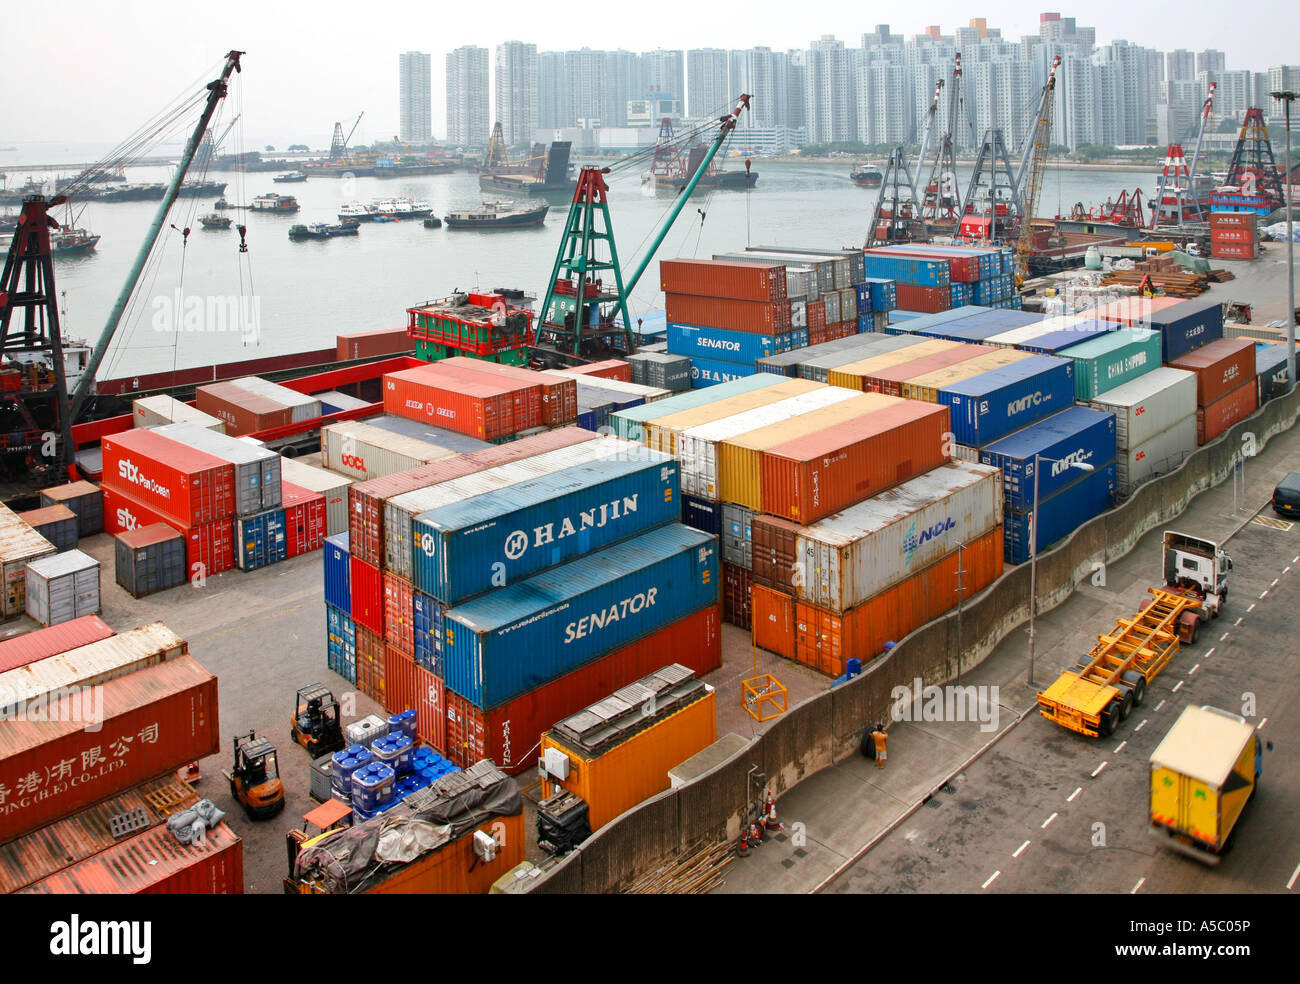 Handel In Hong Kong China Asien Stockbild